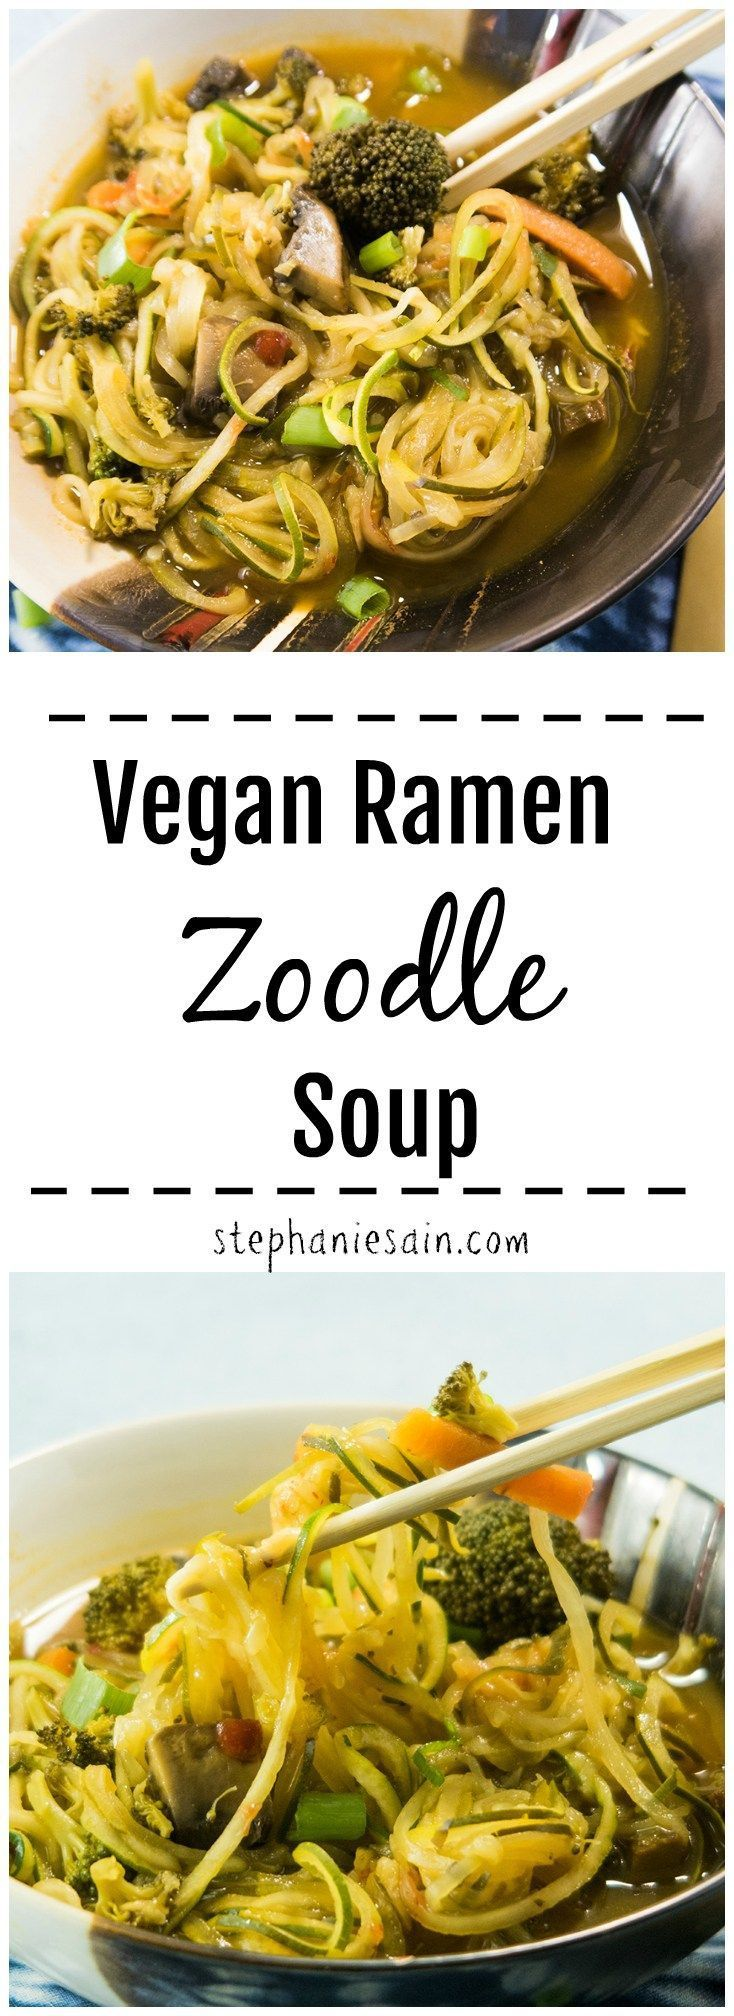 This Vegan Ramen Zoodle Soup is loaded with fresh veggies and zucchini noodles. …